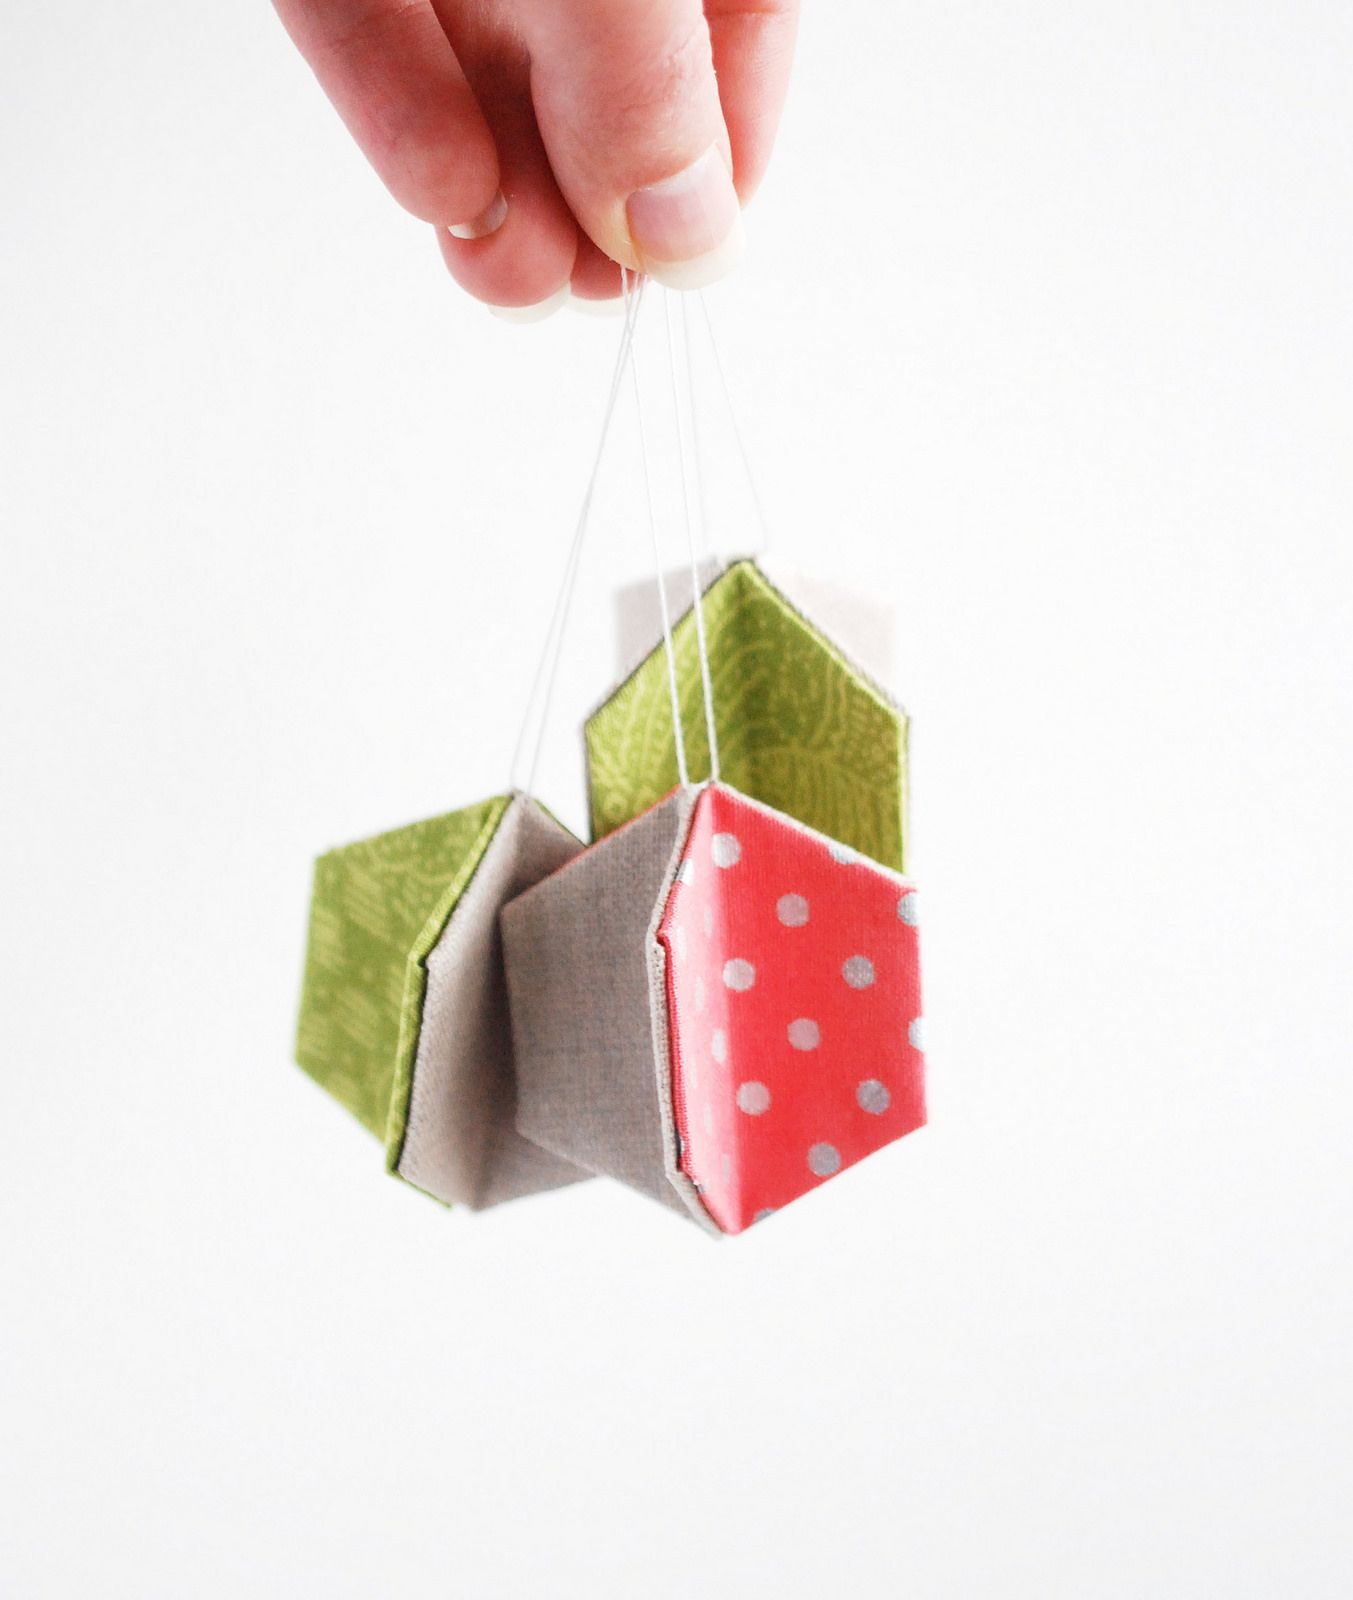 Easy Hexagon Christmas Ornament